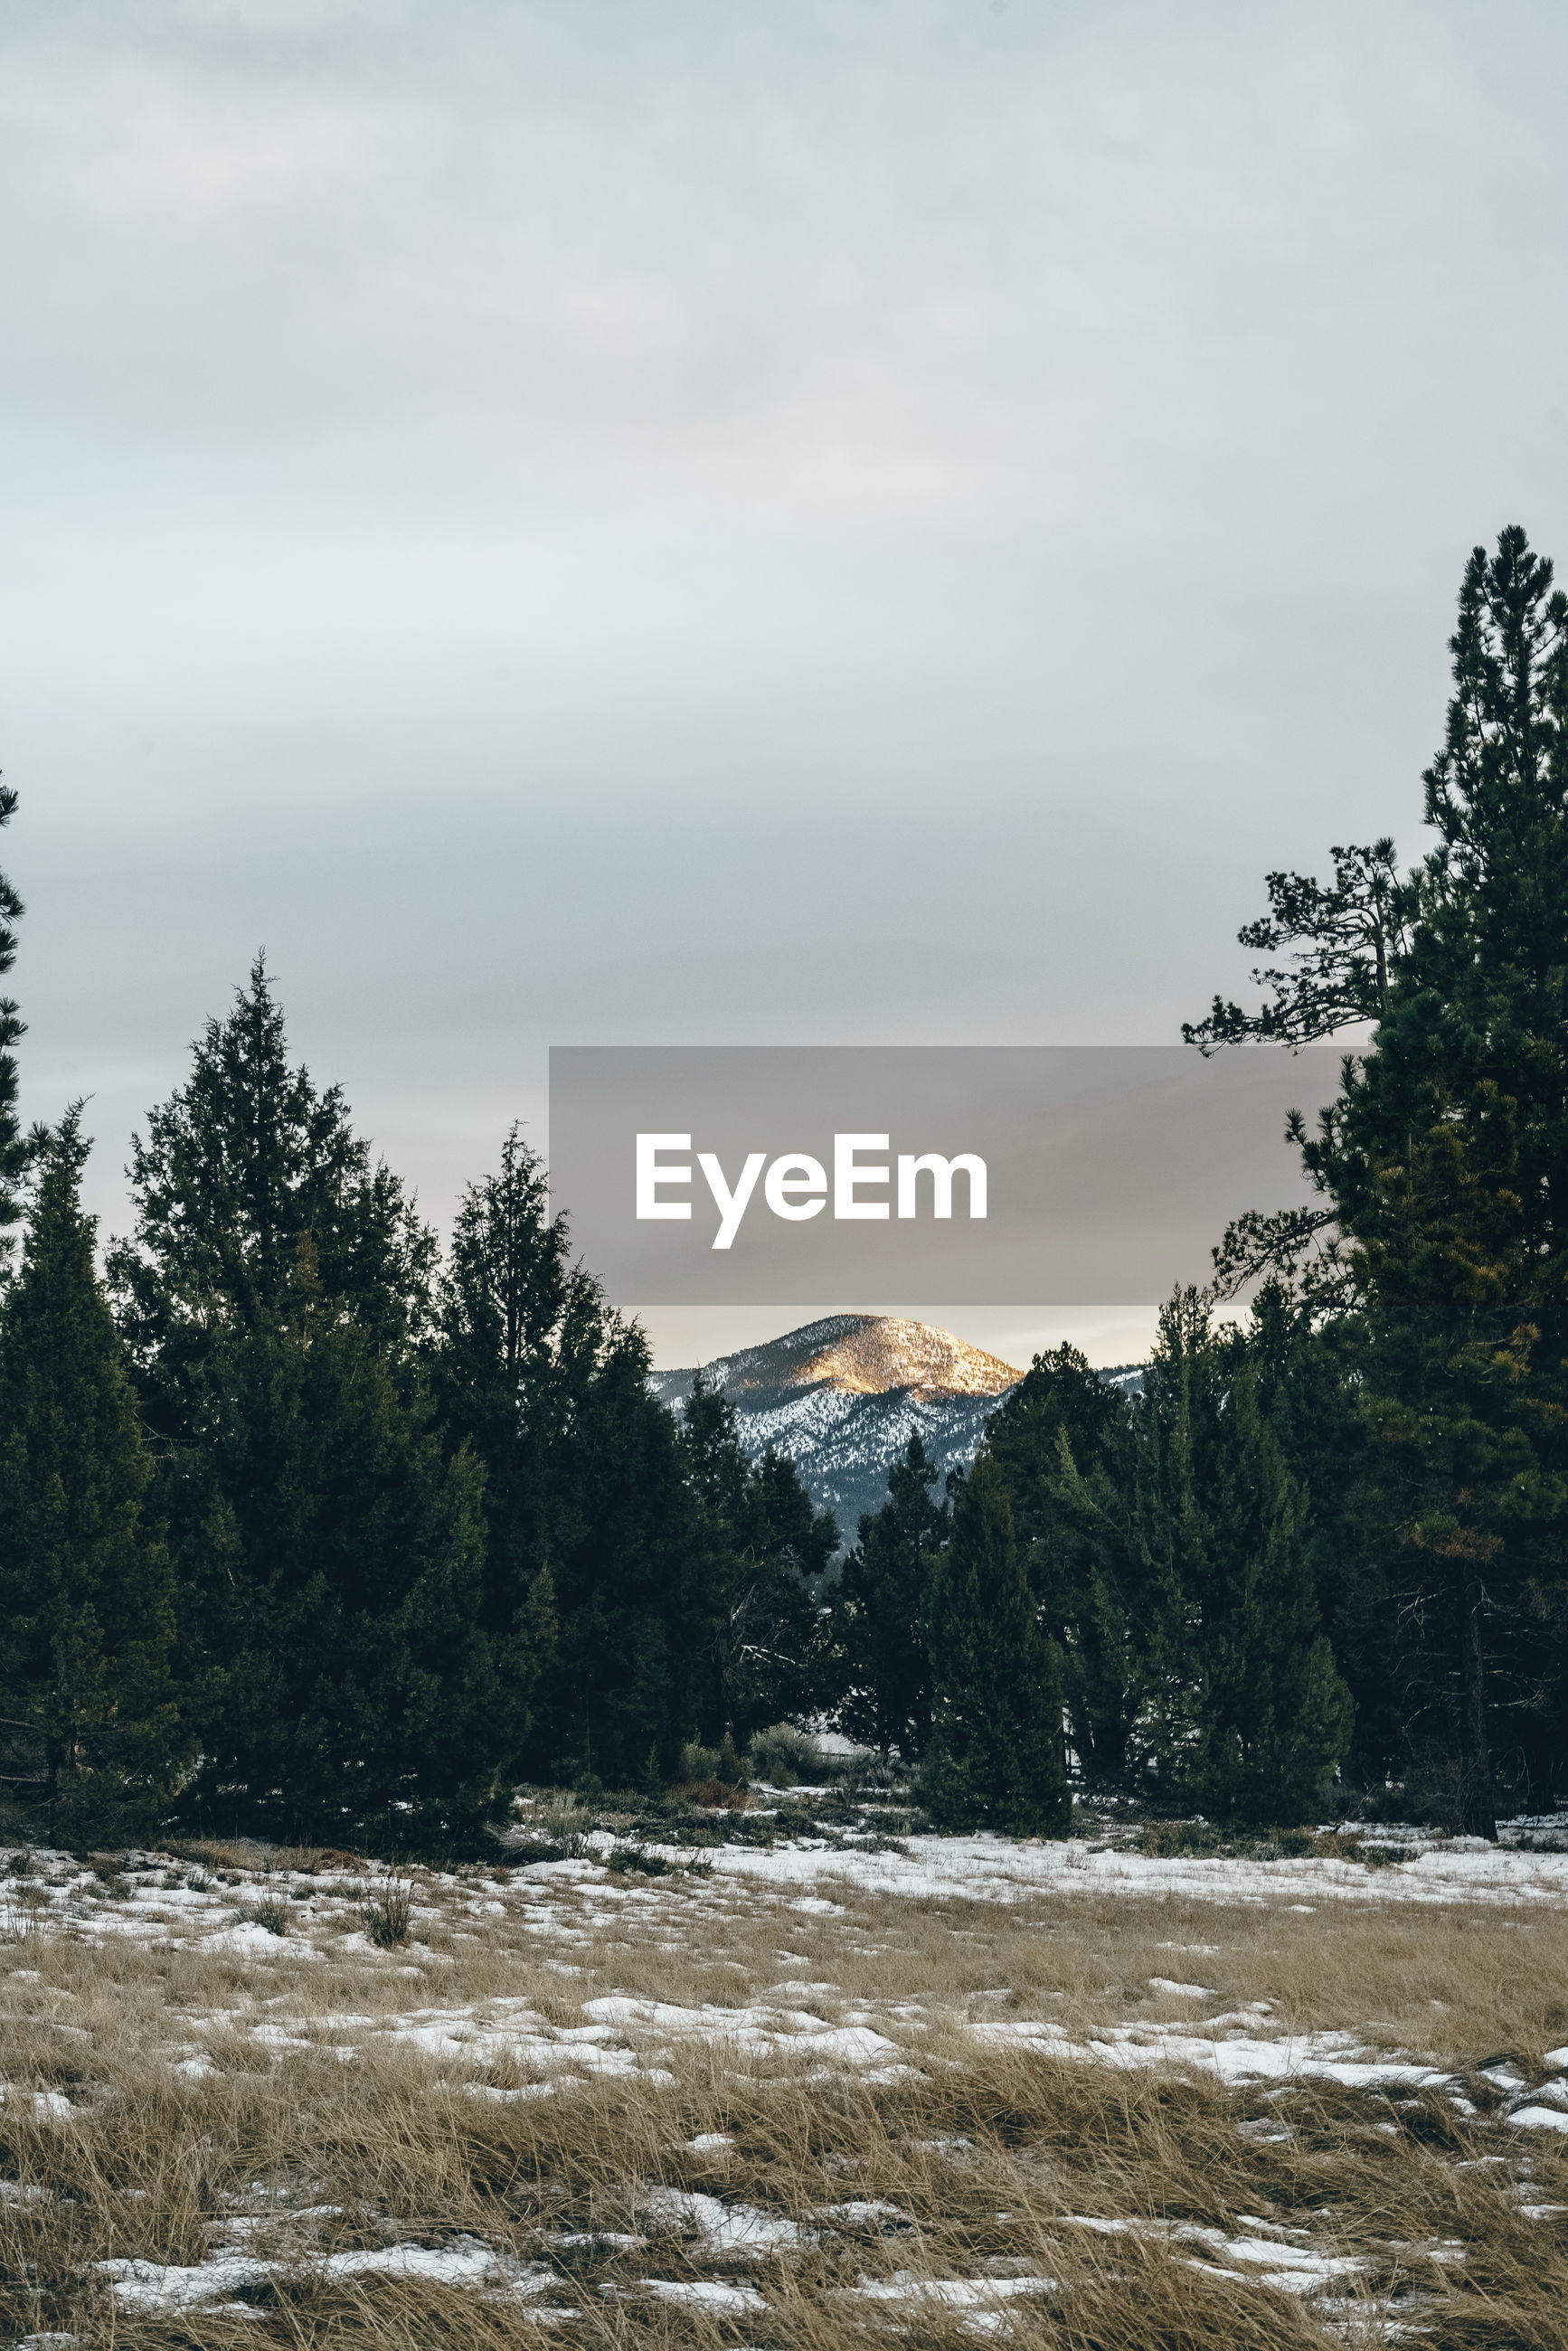 PINE TREES ON SNOWCAPPED MOUNTAIN AGAINST SKY